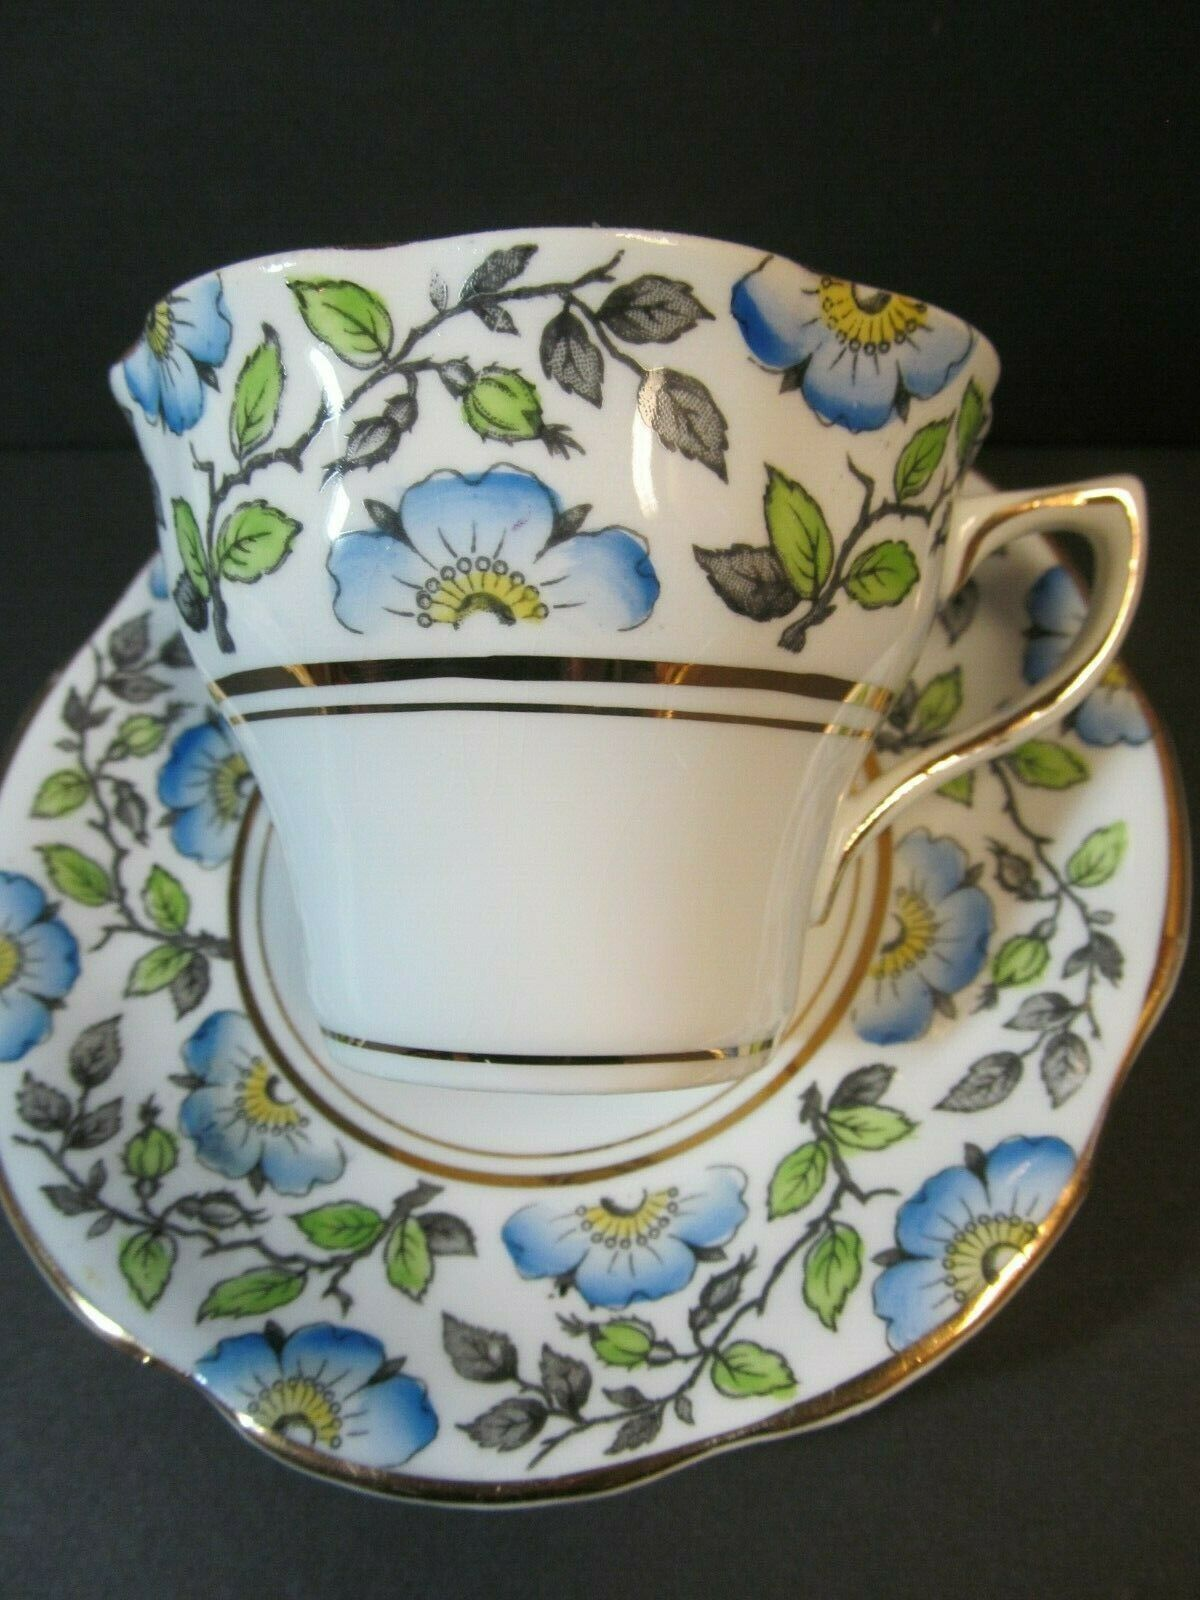 Primary image for Best Vintage Rosina Bone China Flowers 498 Pattern Cup Saucer Set Floral England